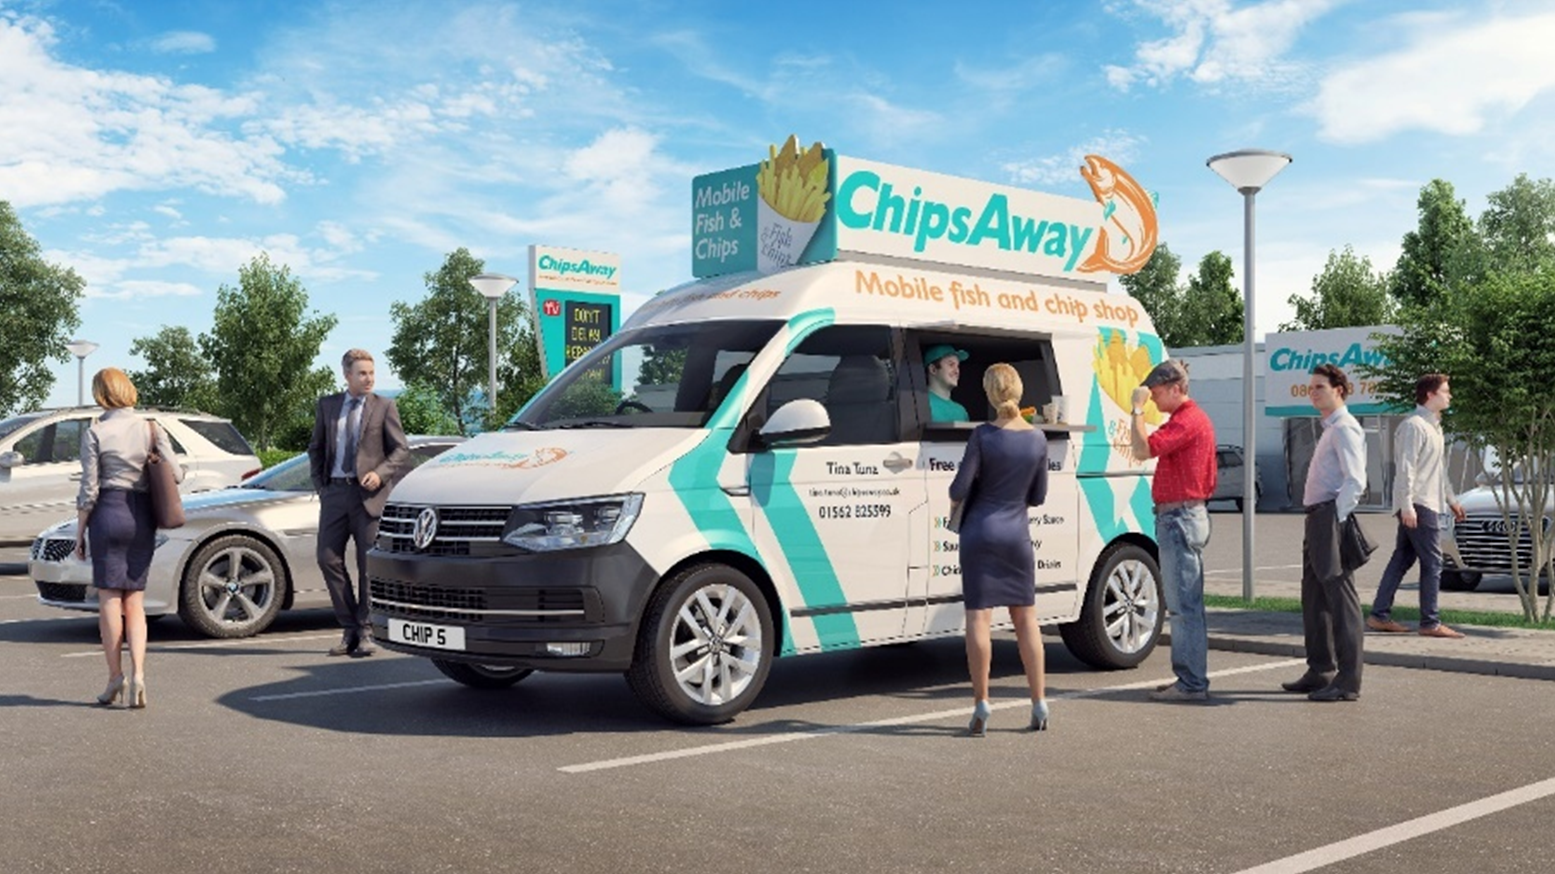 ChipsAway launch exciting new sister company – ChipsAway!